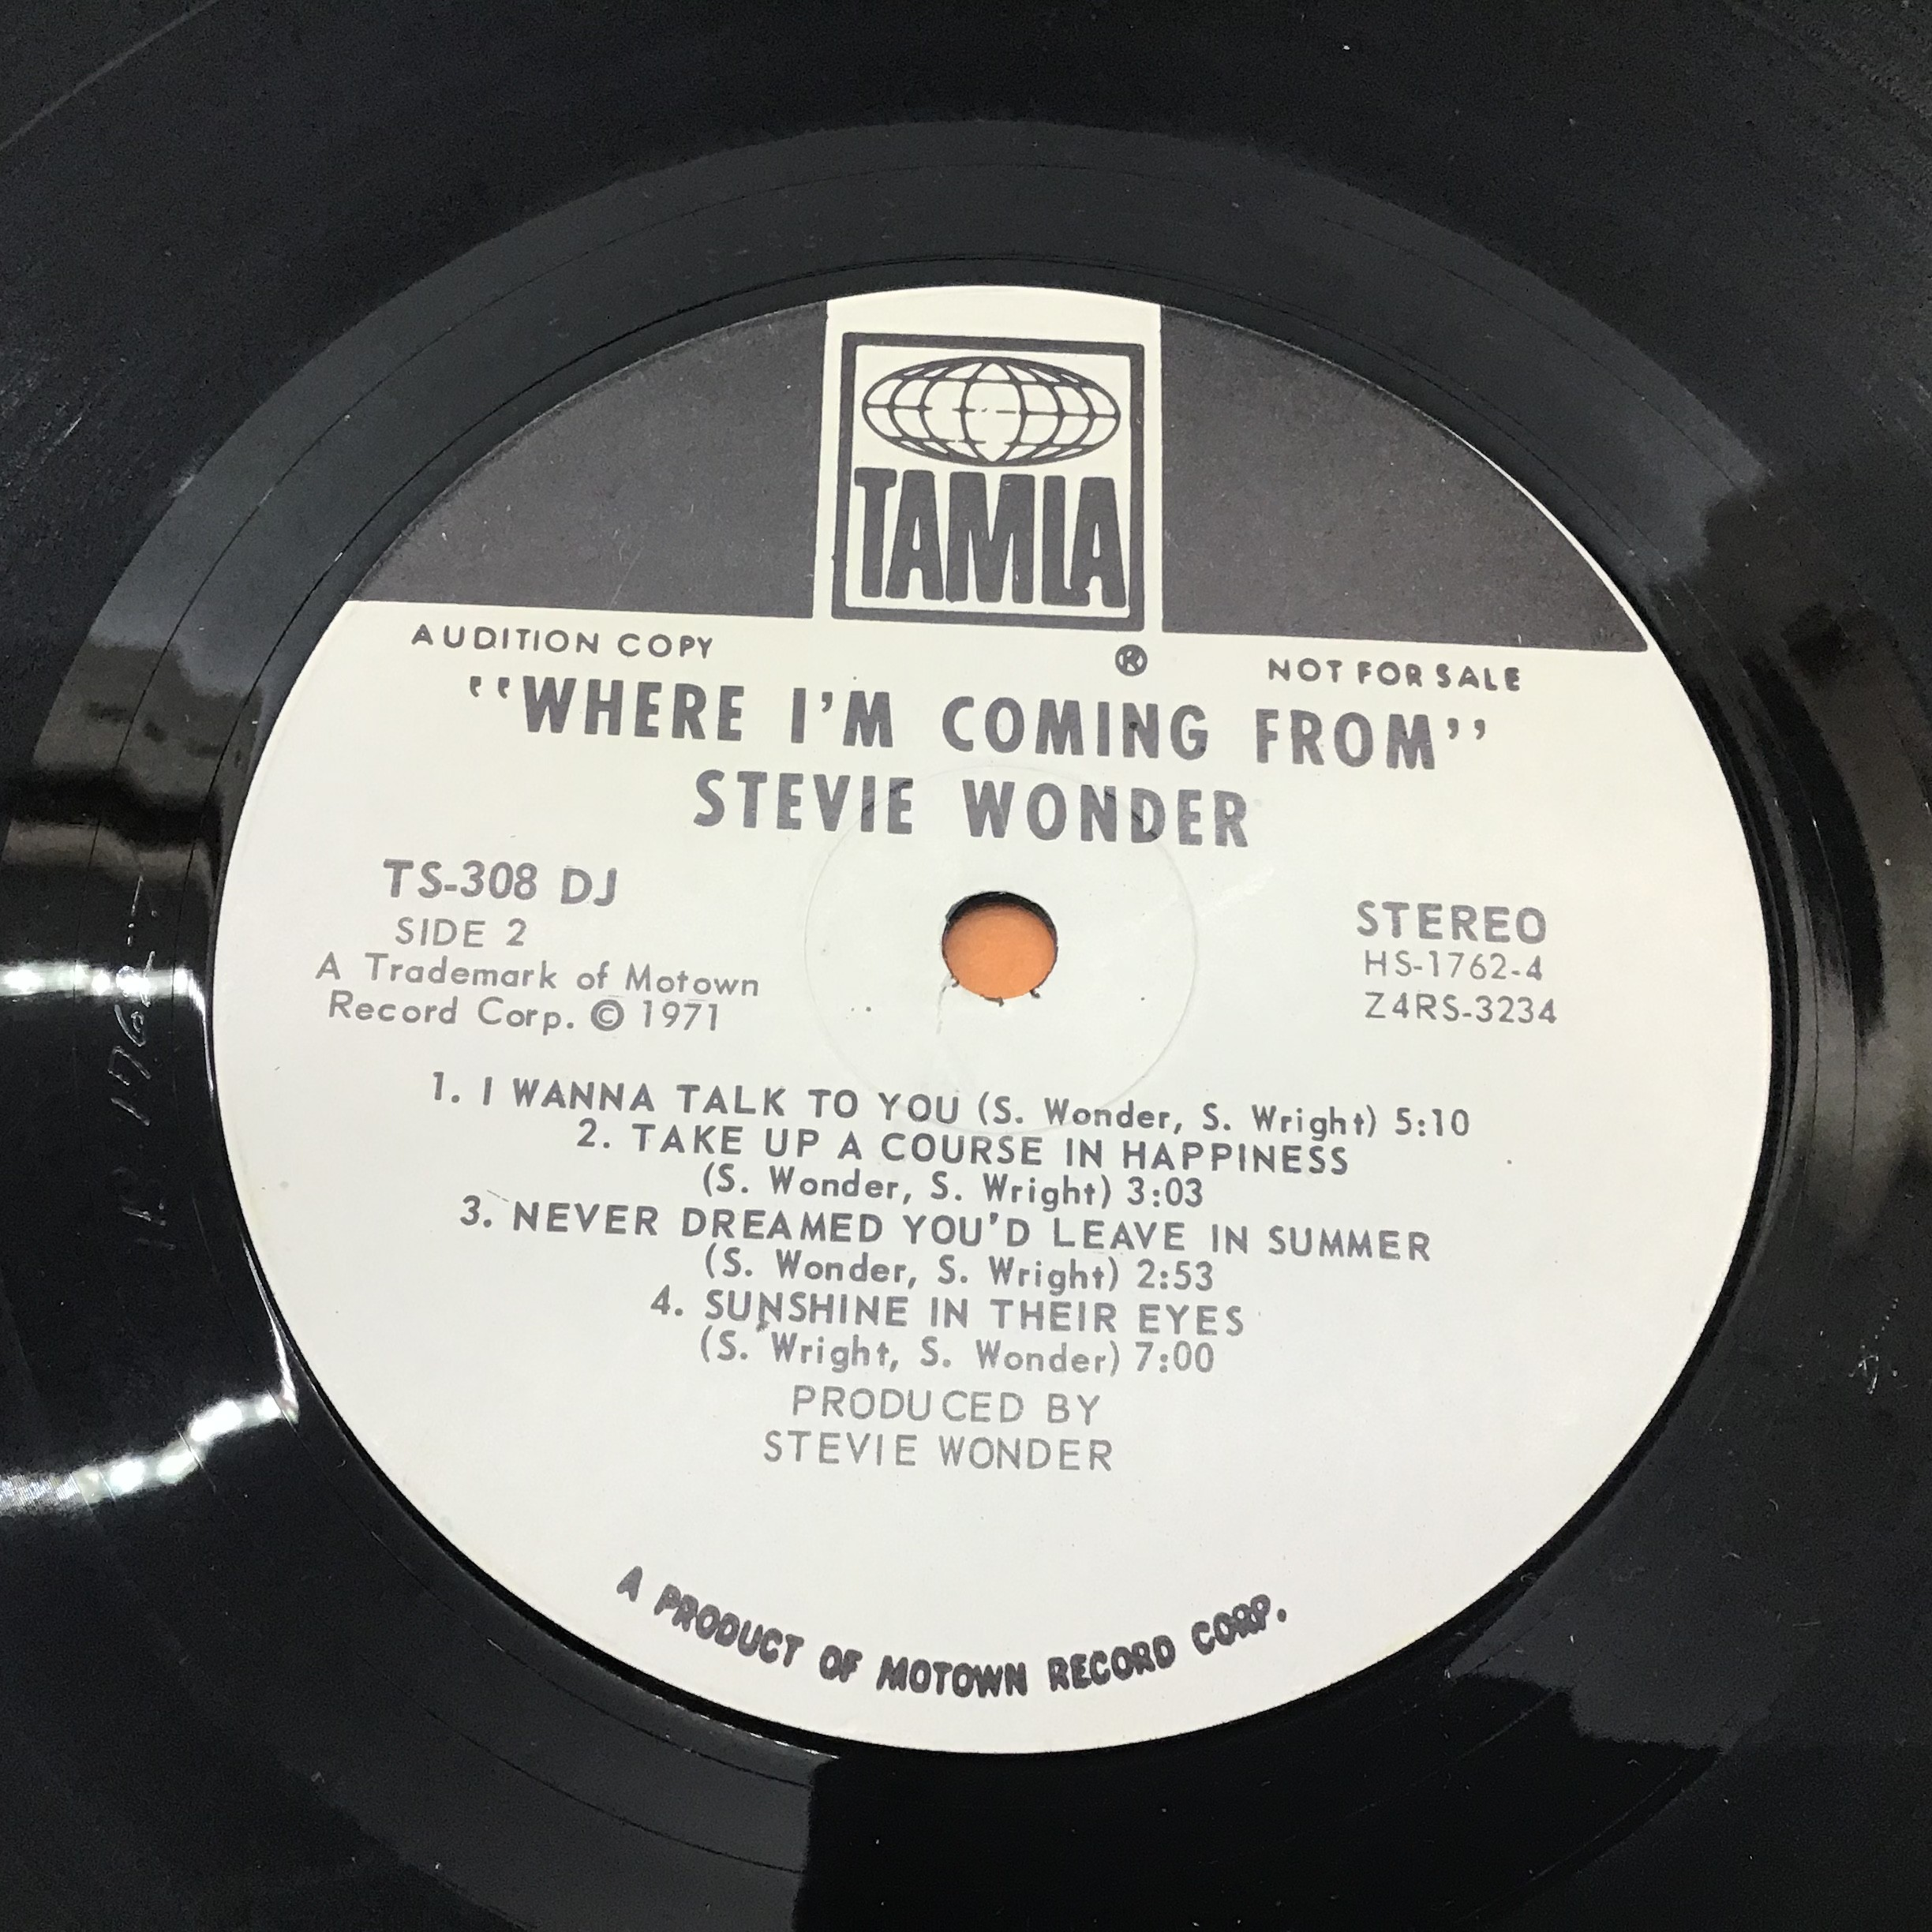 STEVIE WONDER VINYL LP RECORDS X 7. Found here in VG+ conditions with a demo copy of ?Where I?m - Image 5 of 5